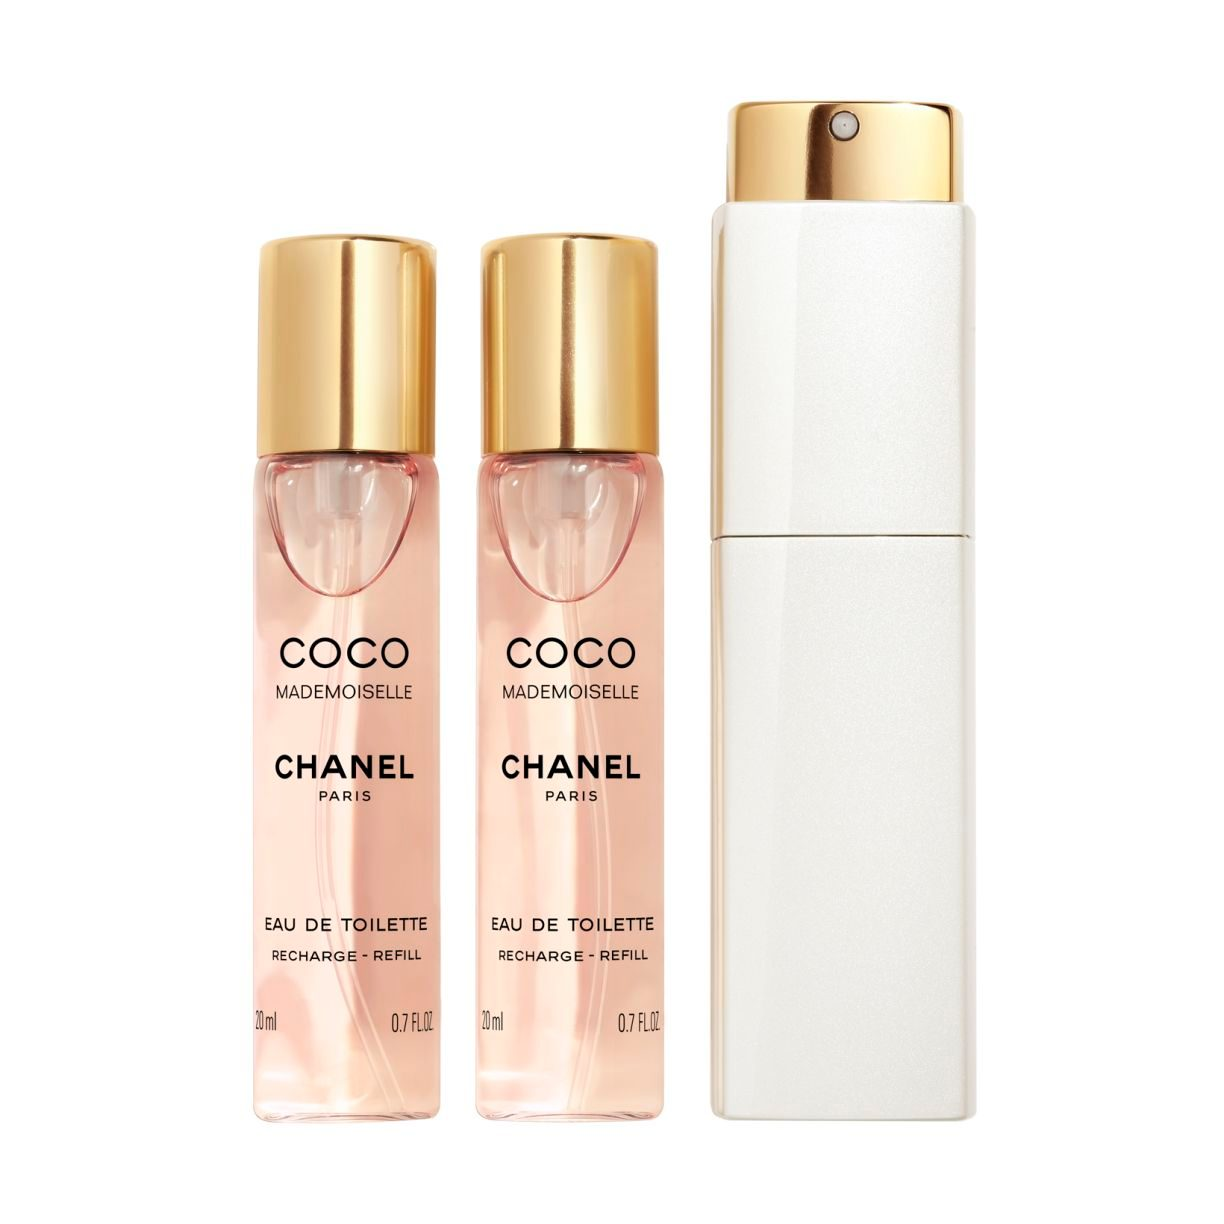 COCO MADEMOISELLE EAU DE TOILETTE TWIST AND SPRAY 3 X 20ML